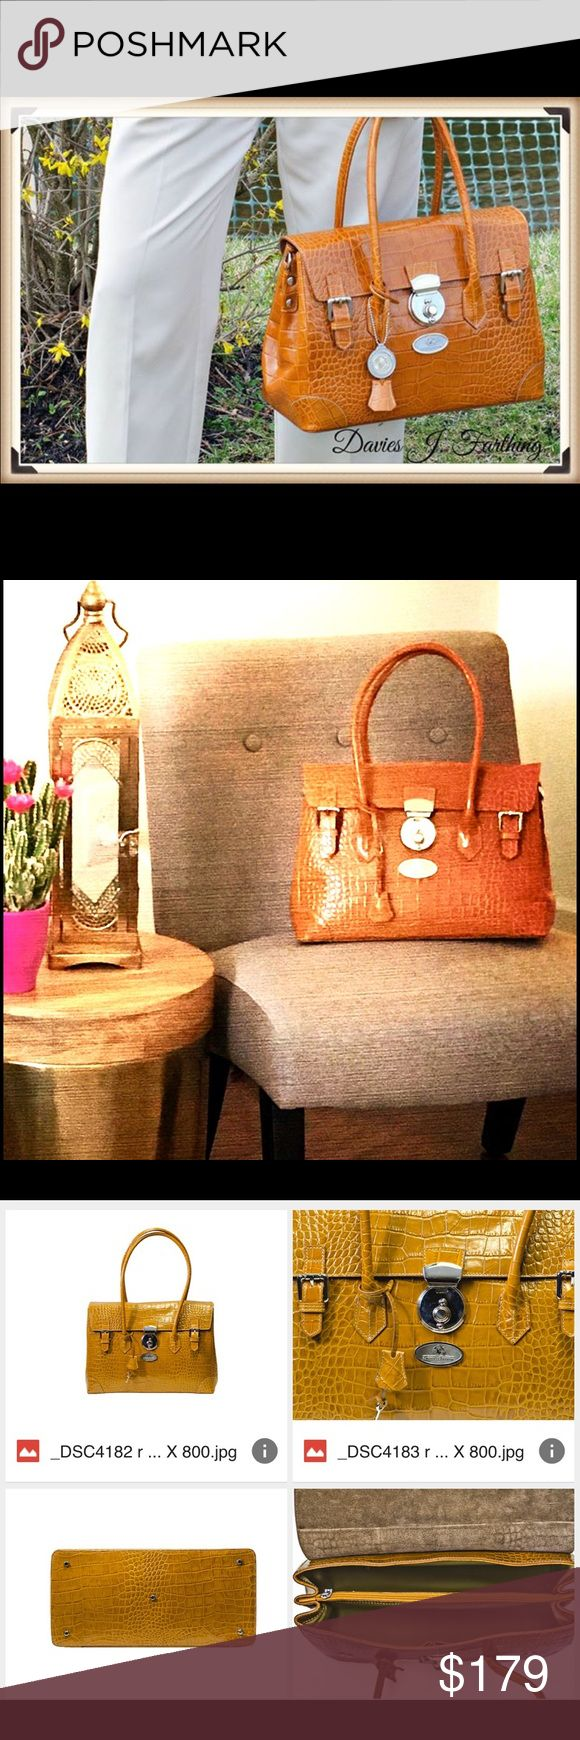 Davies J. Farthing Crocodile Bag Made in Italy This is our beautiful DJF Crocodile Handbag made in Italy. New York Style fashion for the run way. DJF leather handbags on SALE now Davies J. Farthing  Bags Shoulder Bags